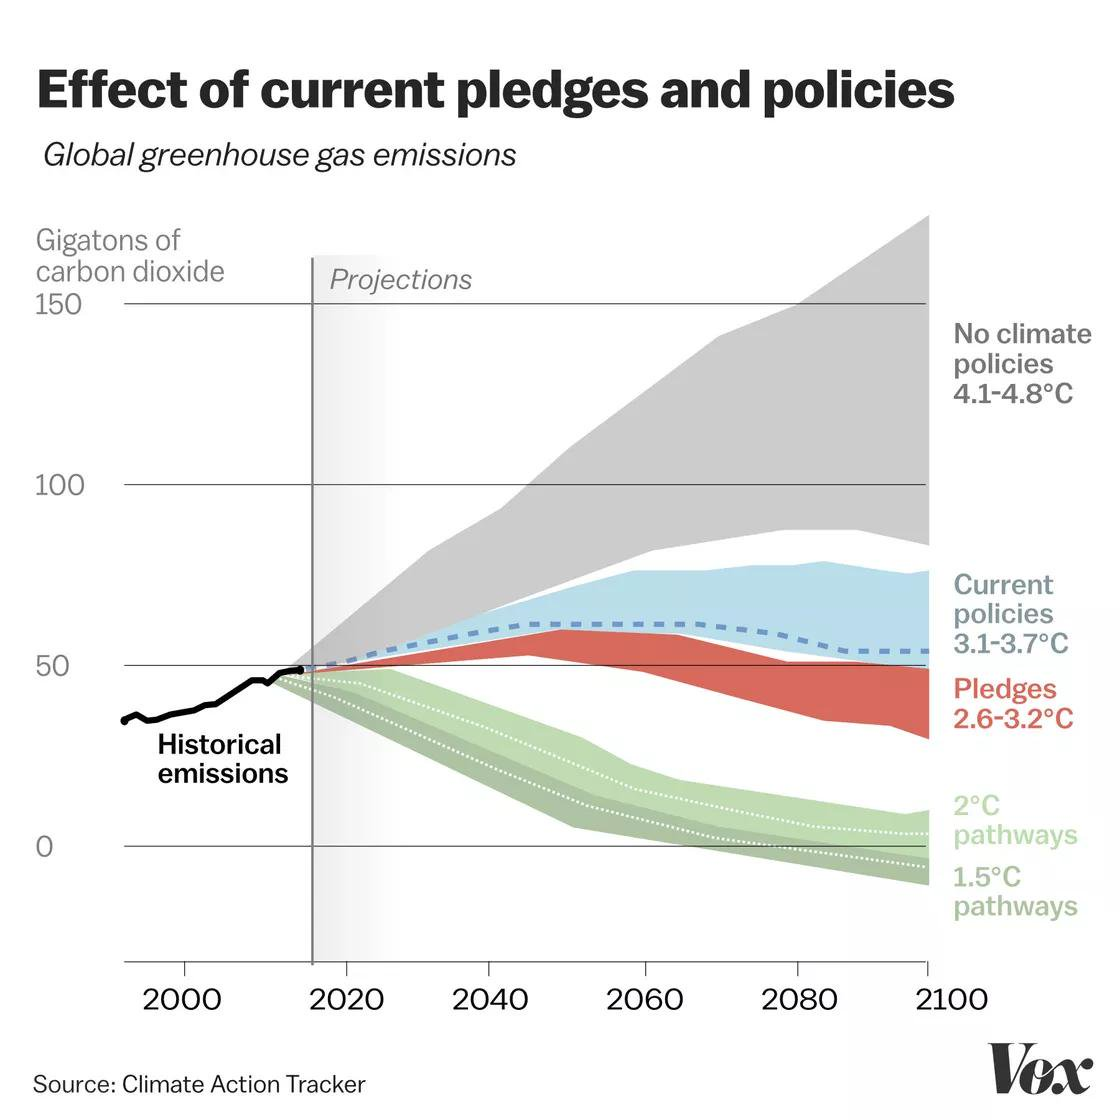 The climate action tracker shows we will reach a 3.5C with the current policies by 2050